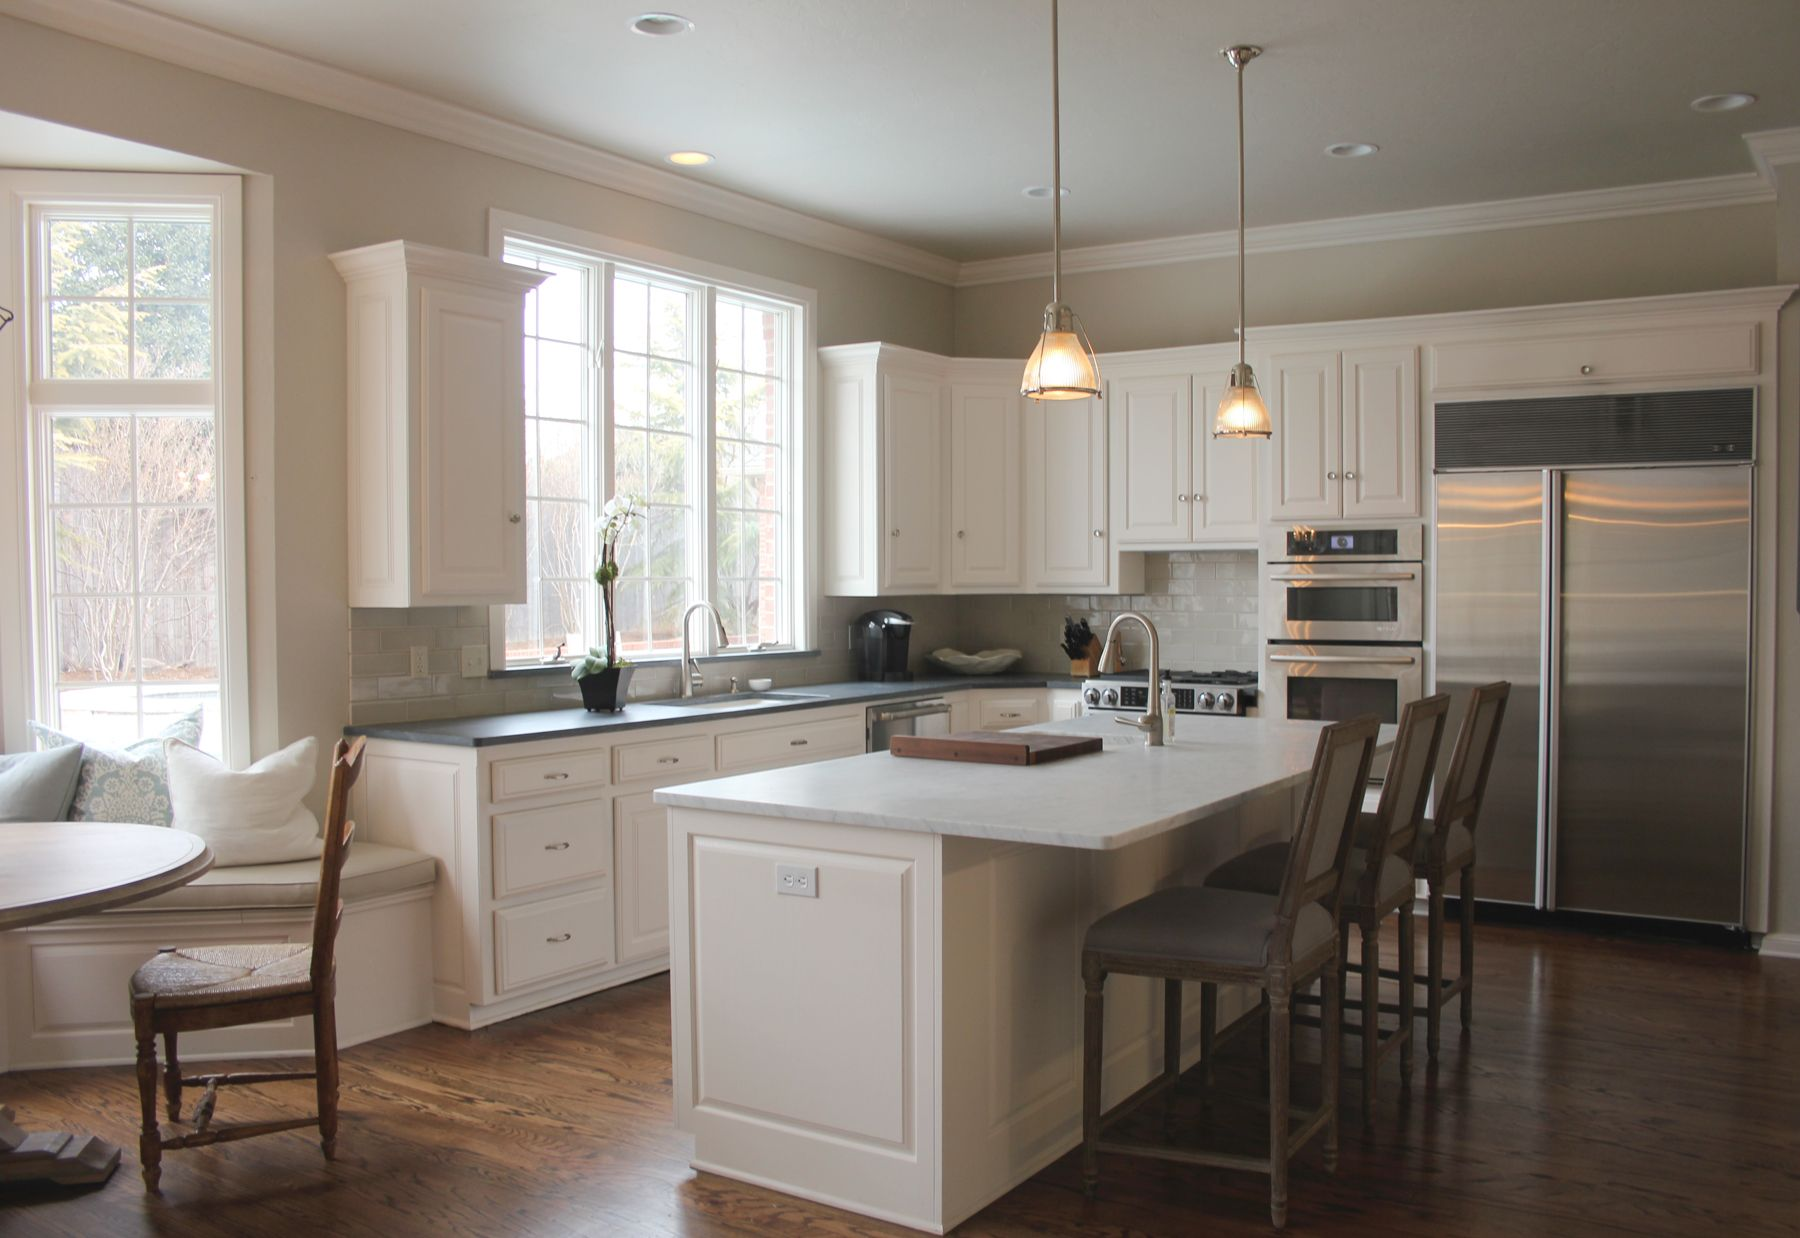 Revere pewter kitchen wall color benjamin moore revere pewter hc 172